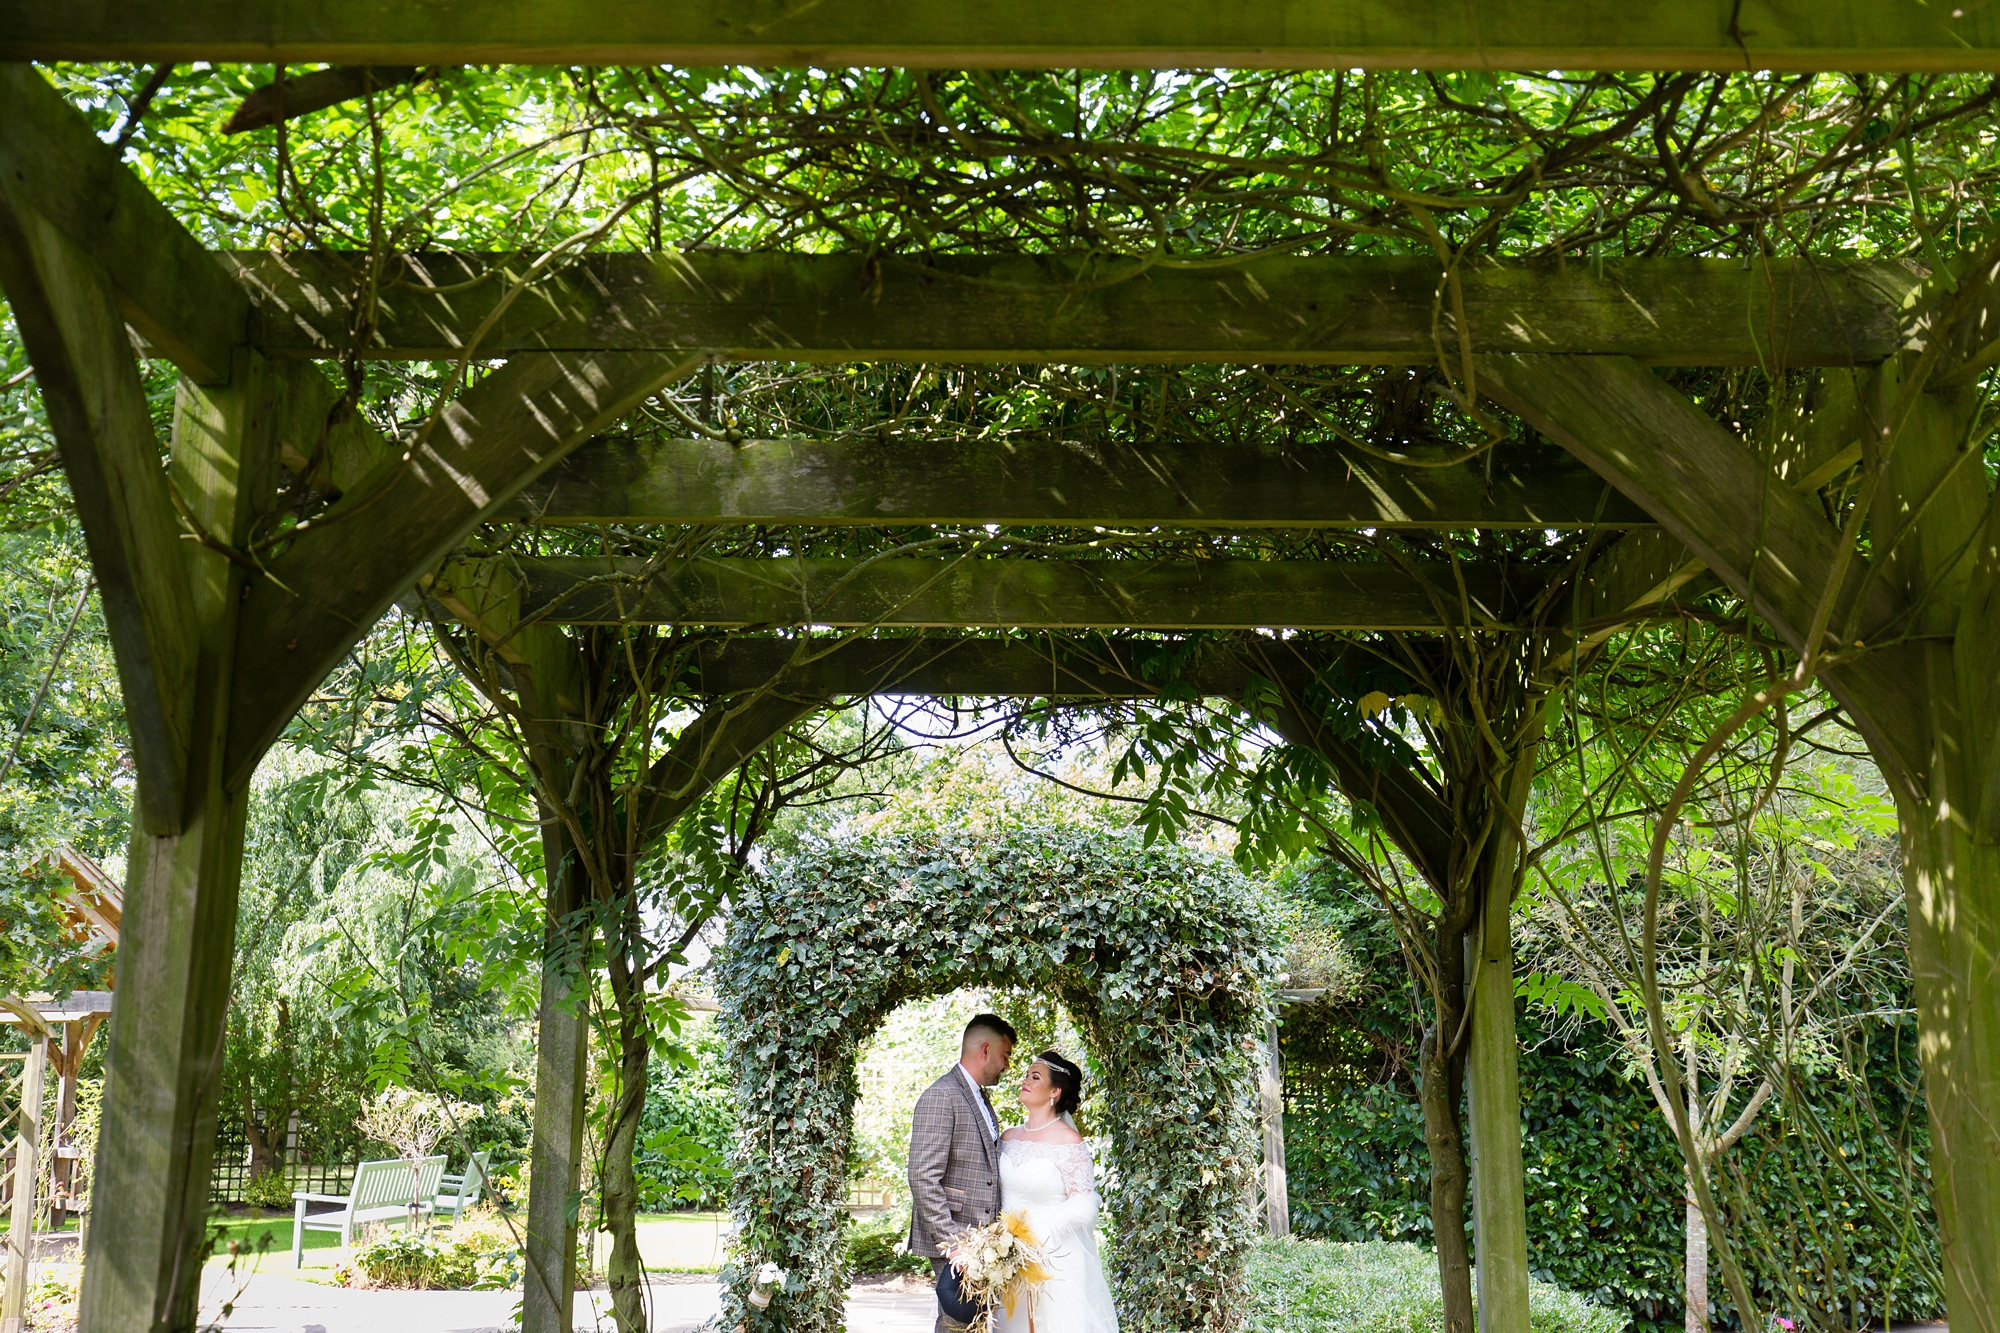 Bride & Groom standing under arbour at Sandburn Hall wedding.